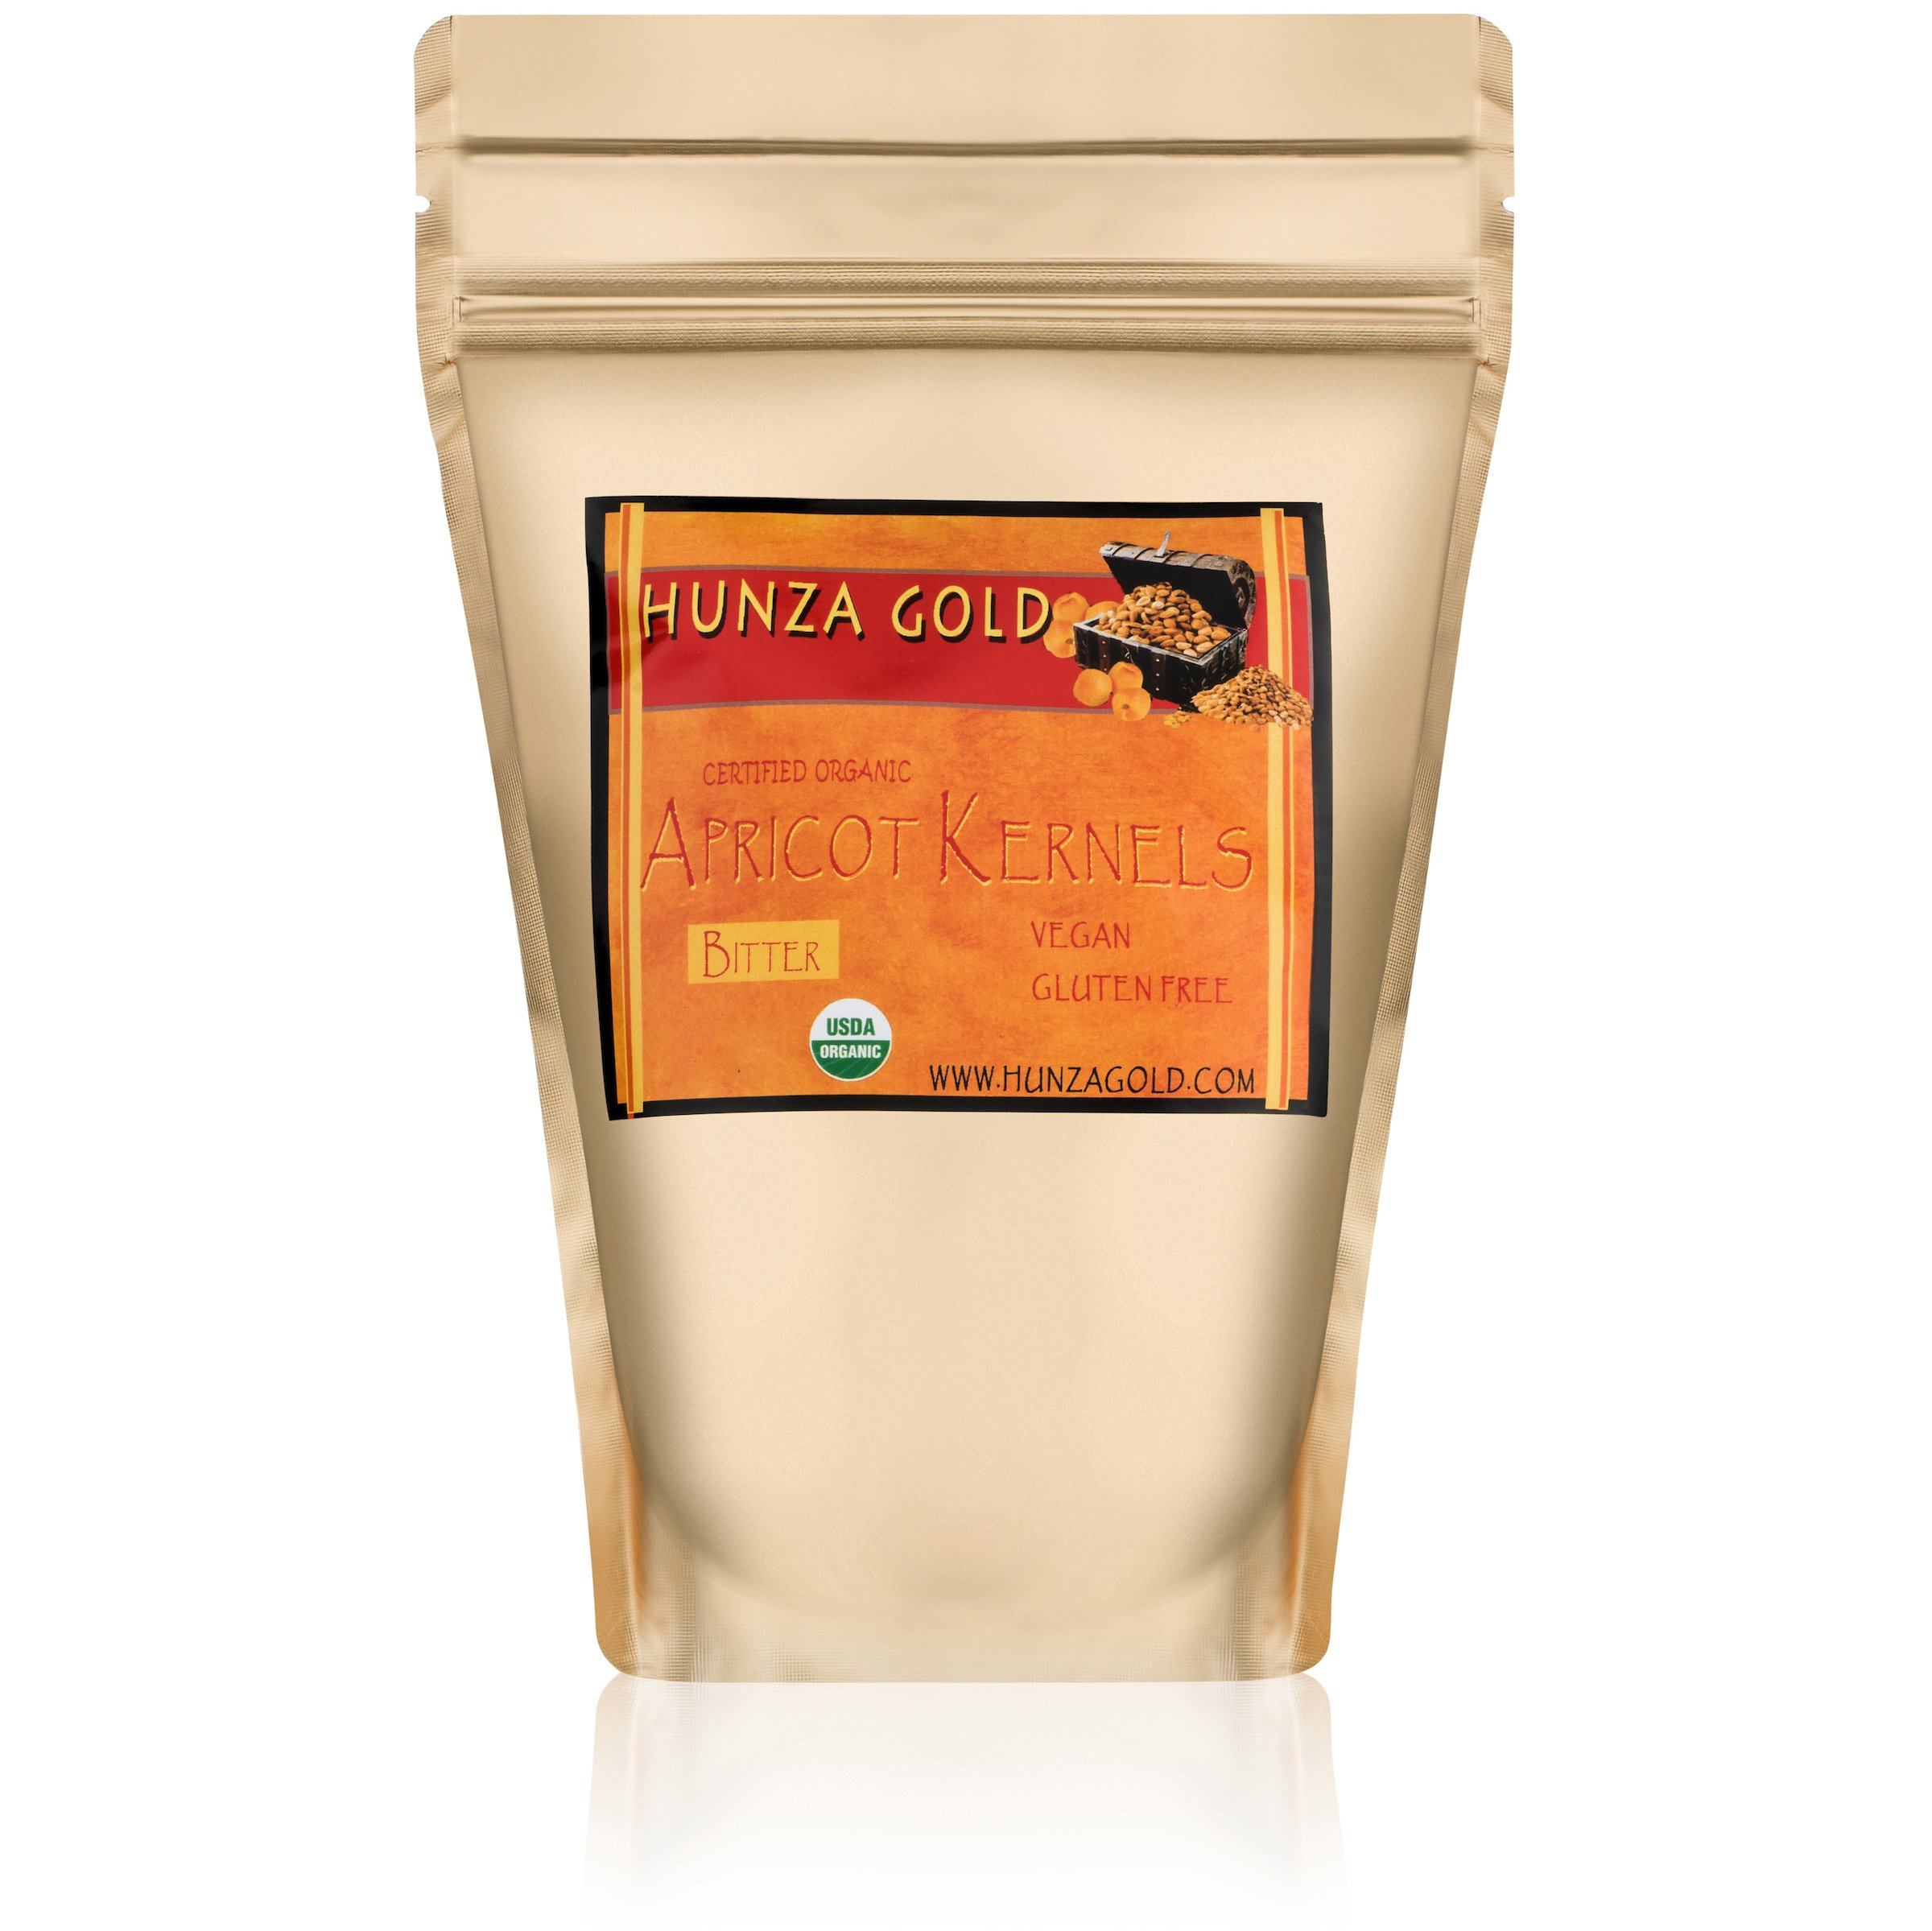 Hunza Gold Bitter Certified Organic Raw Apricot Kernels (2 Pounds / 908 grams)